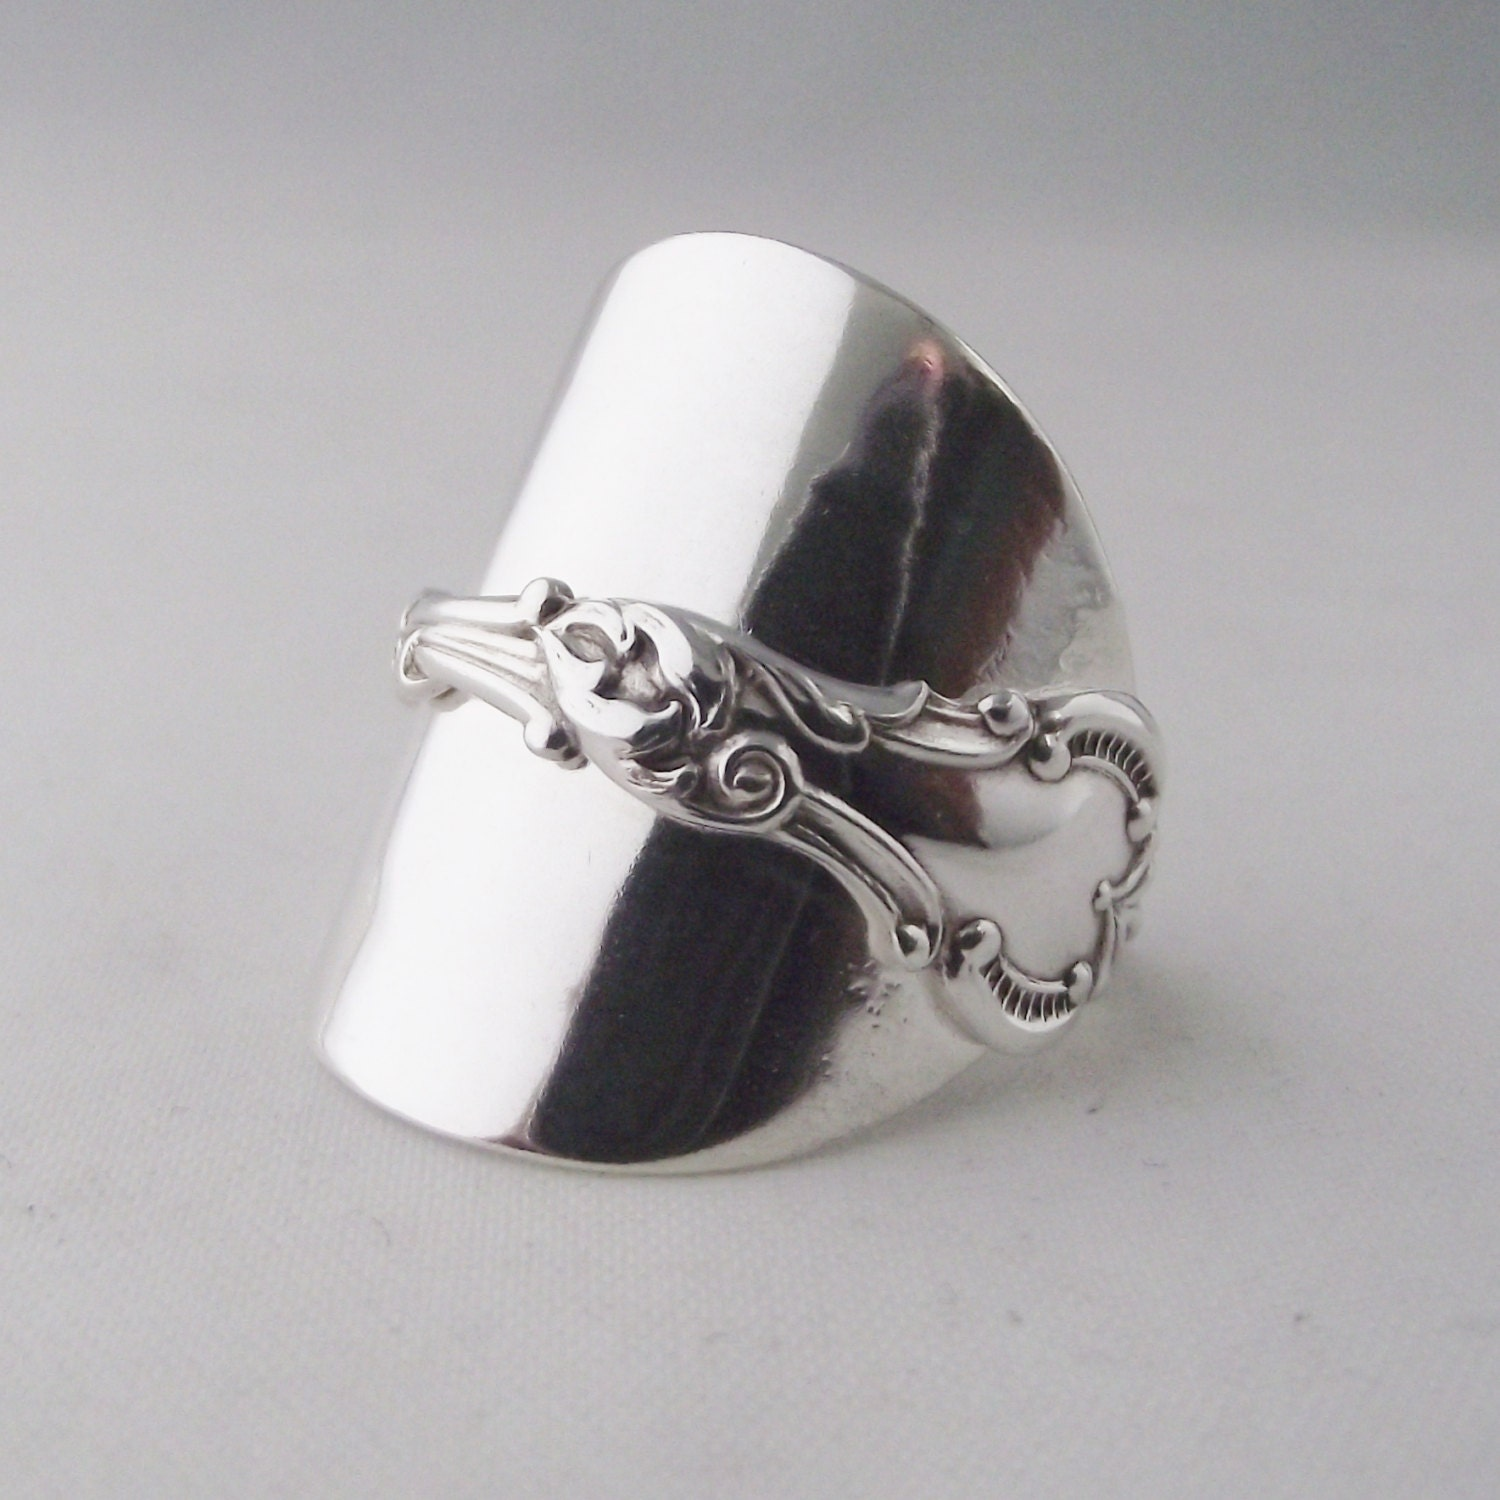 Beautifully Unusual Handmade Antique Sterling Silver Spoon Ring dated 1902 Jewellery Unique Gift